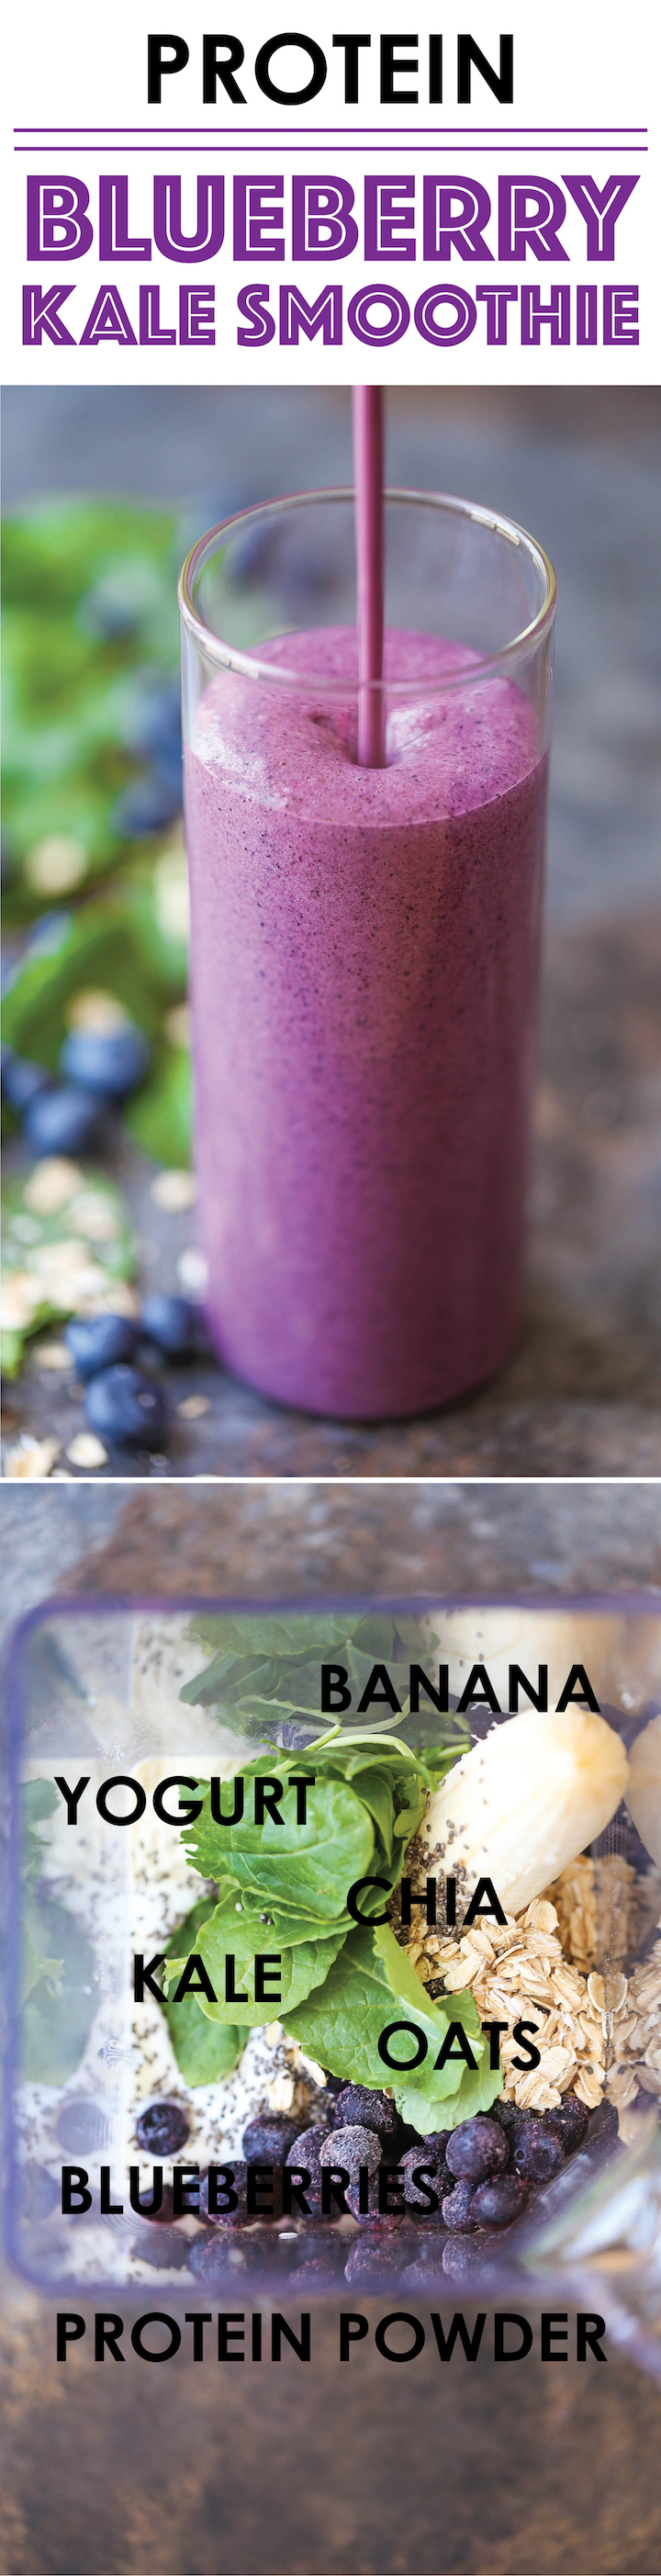 Protein Blueberry Kale Smoothie Damn Delicious